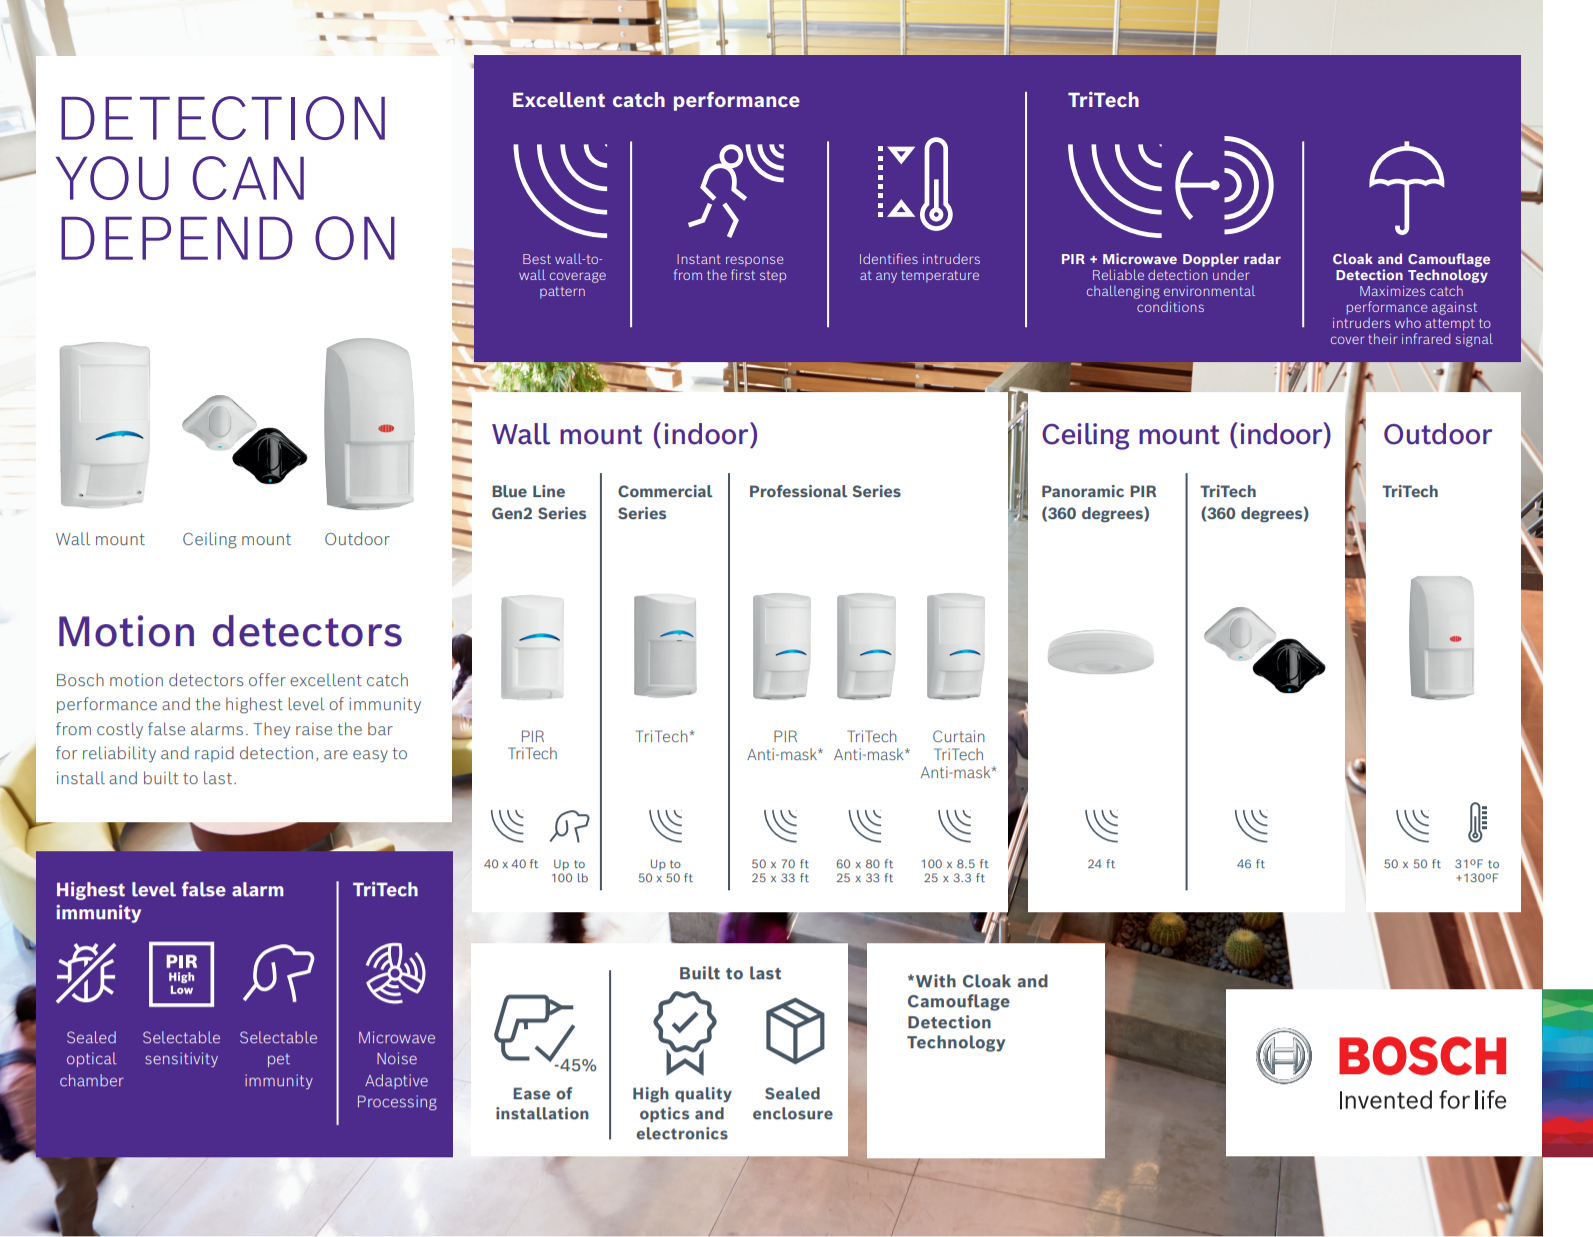 Bosch Motion Detection infographic 6-2021